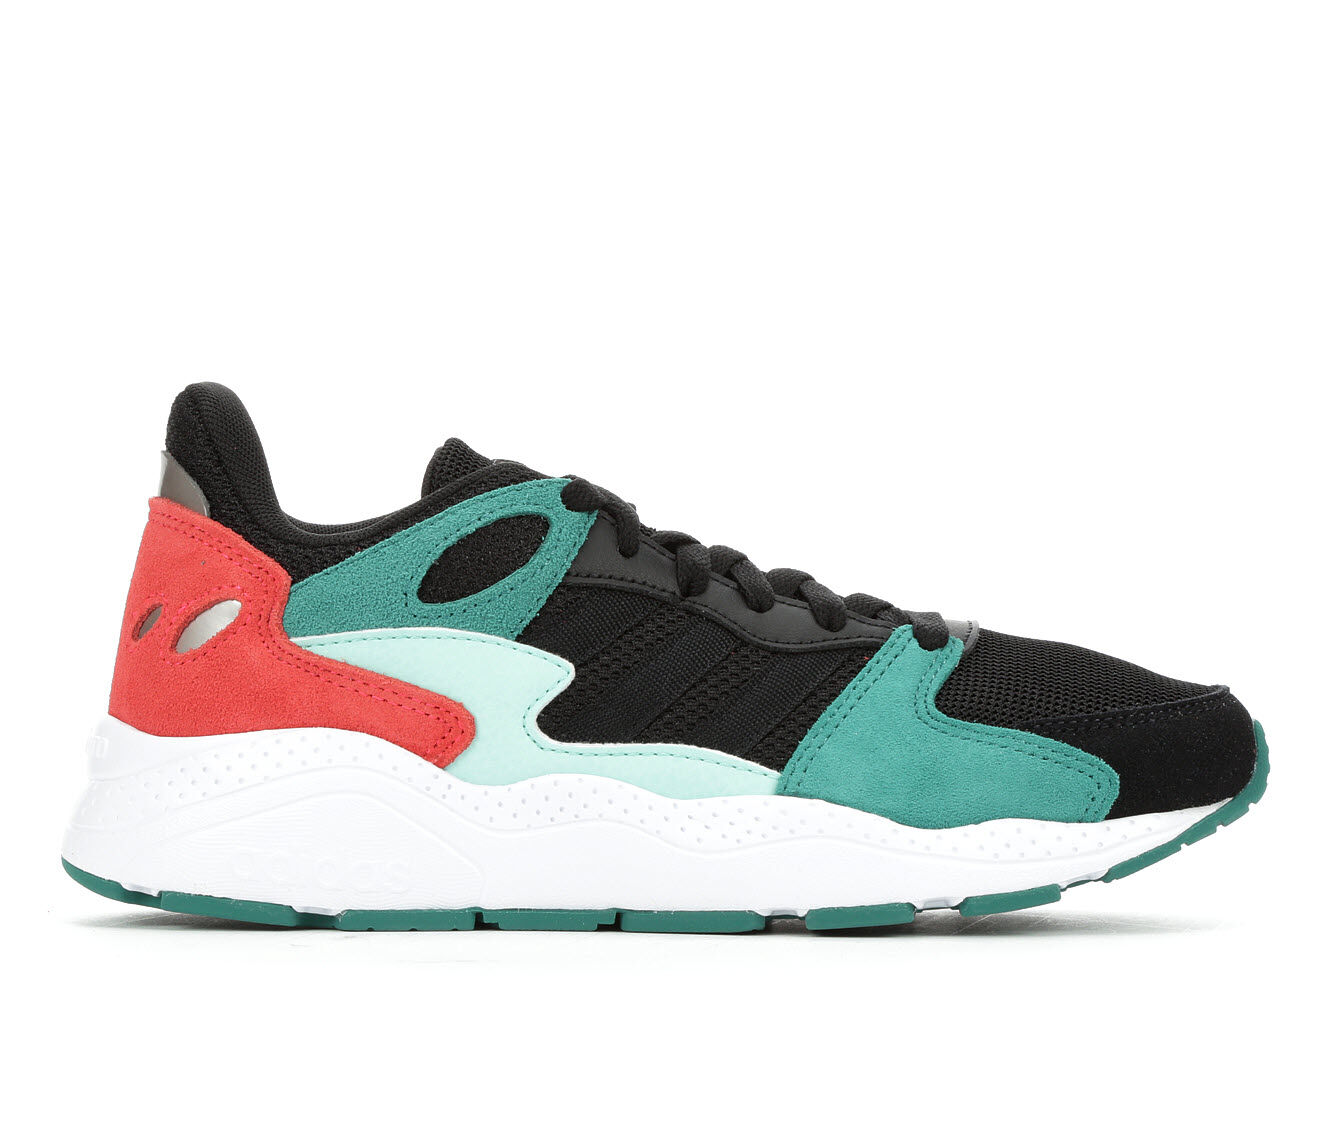 Women's Adidas Chaos Sneakers Black/Green/Red